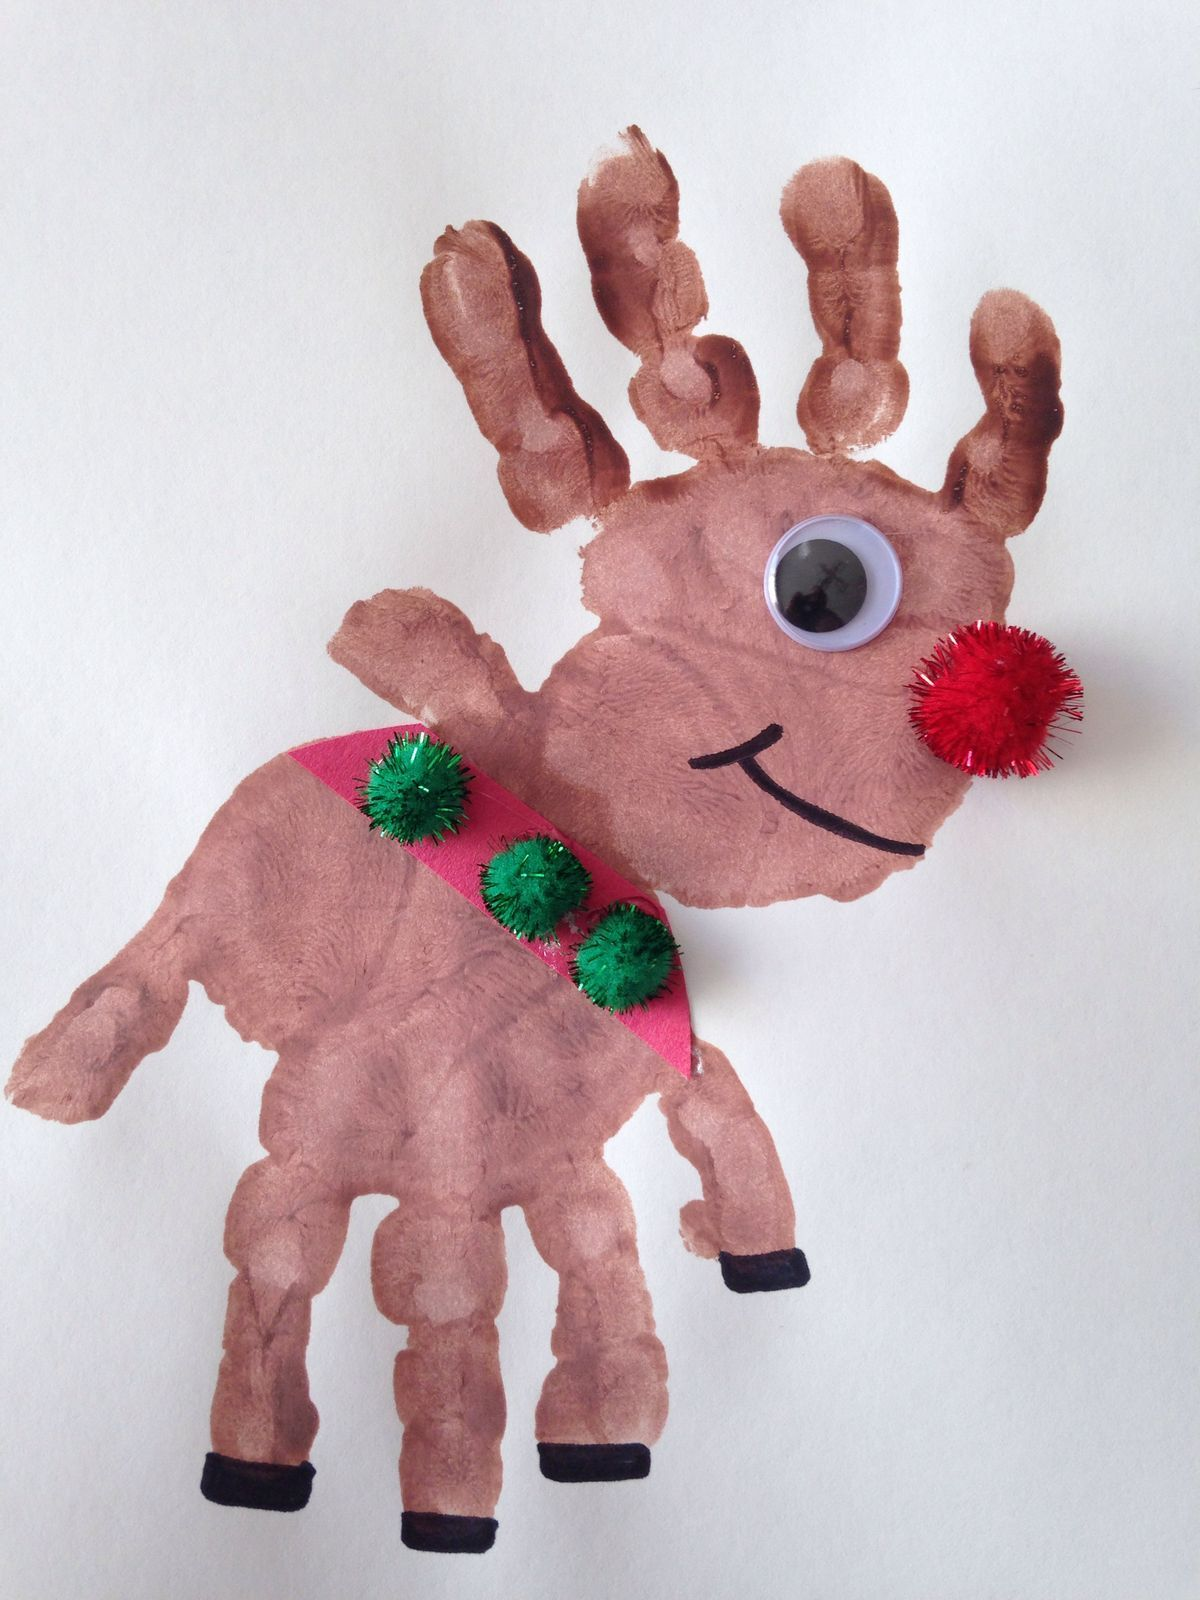 Handprint Christmas Craft Ideas Part - 18: 10 Handprint Christmas Crafts For Kids